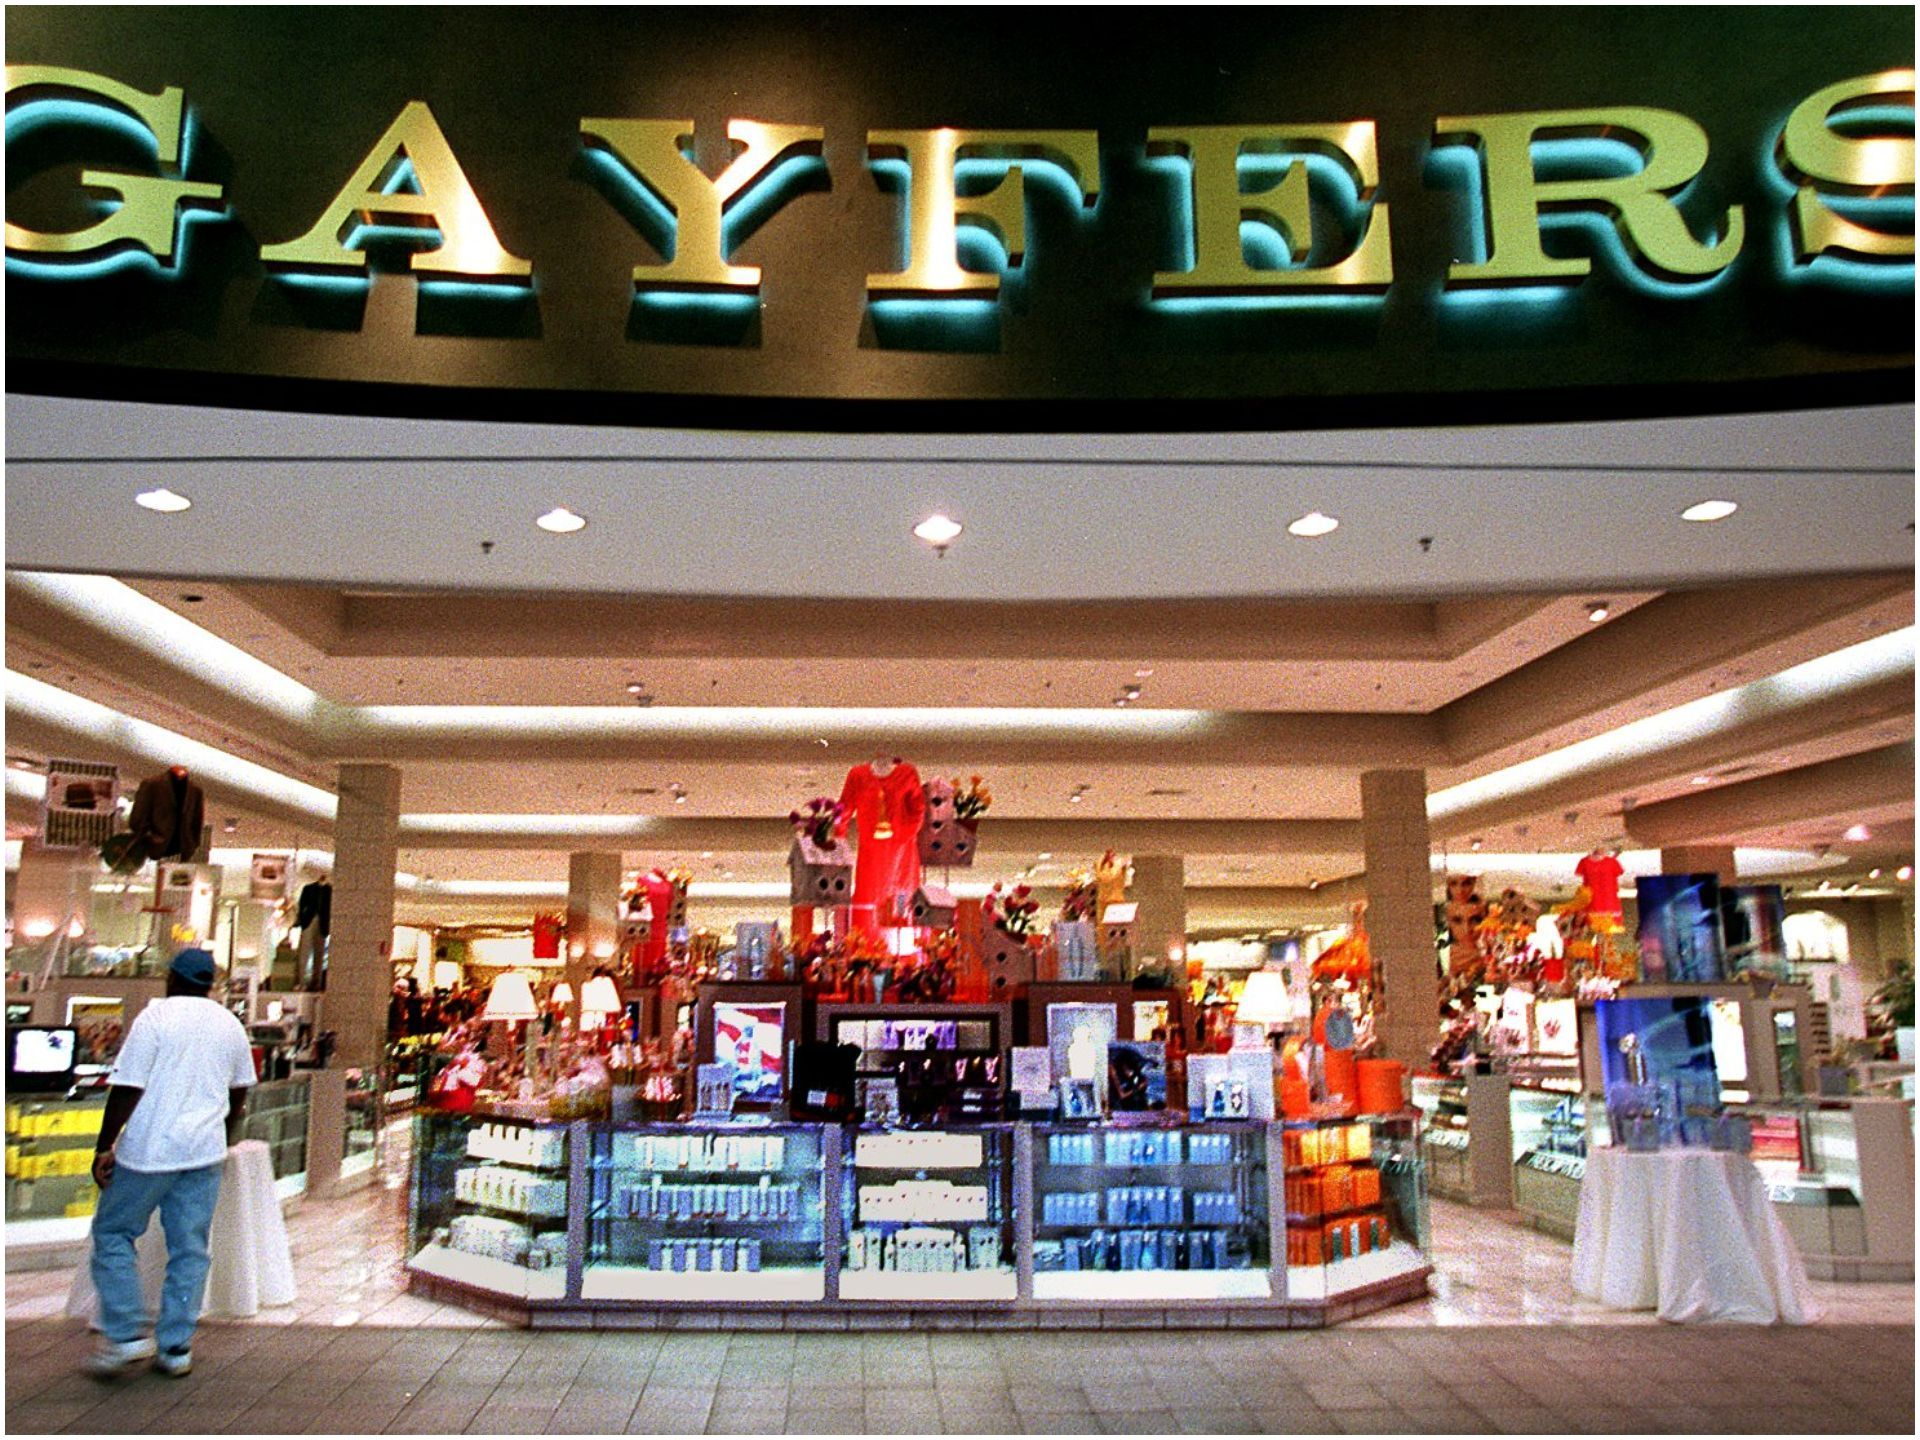 Shopping Center Business Magazine Gayfers A Long Time Department Store In Tallahassee